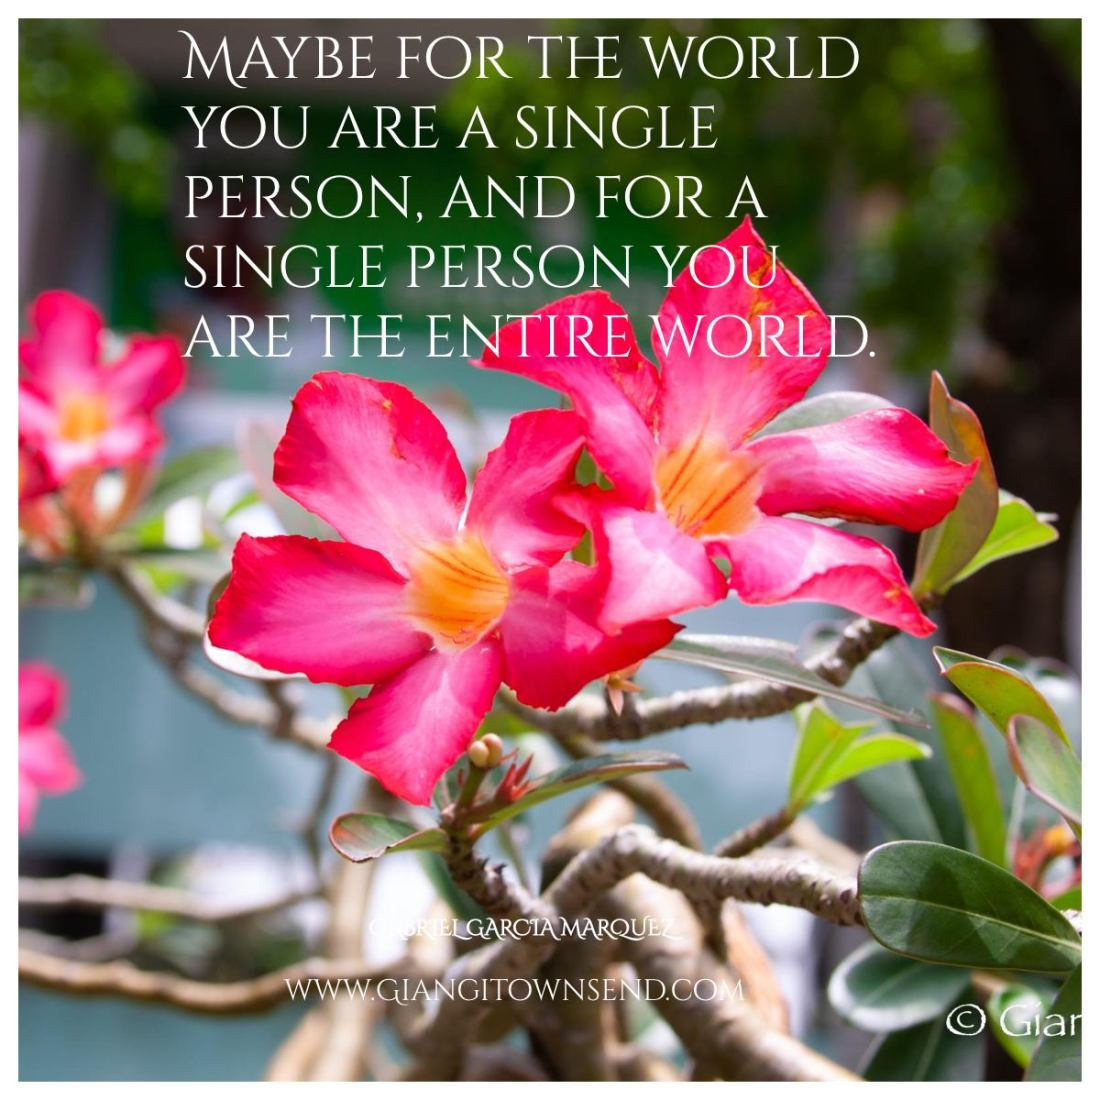 maybe for the world...